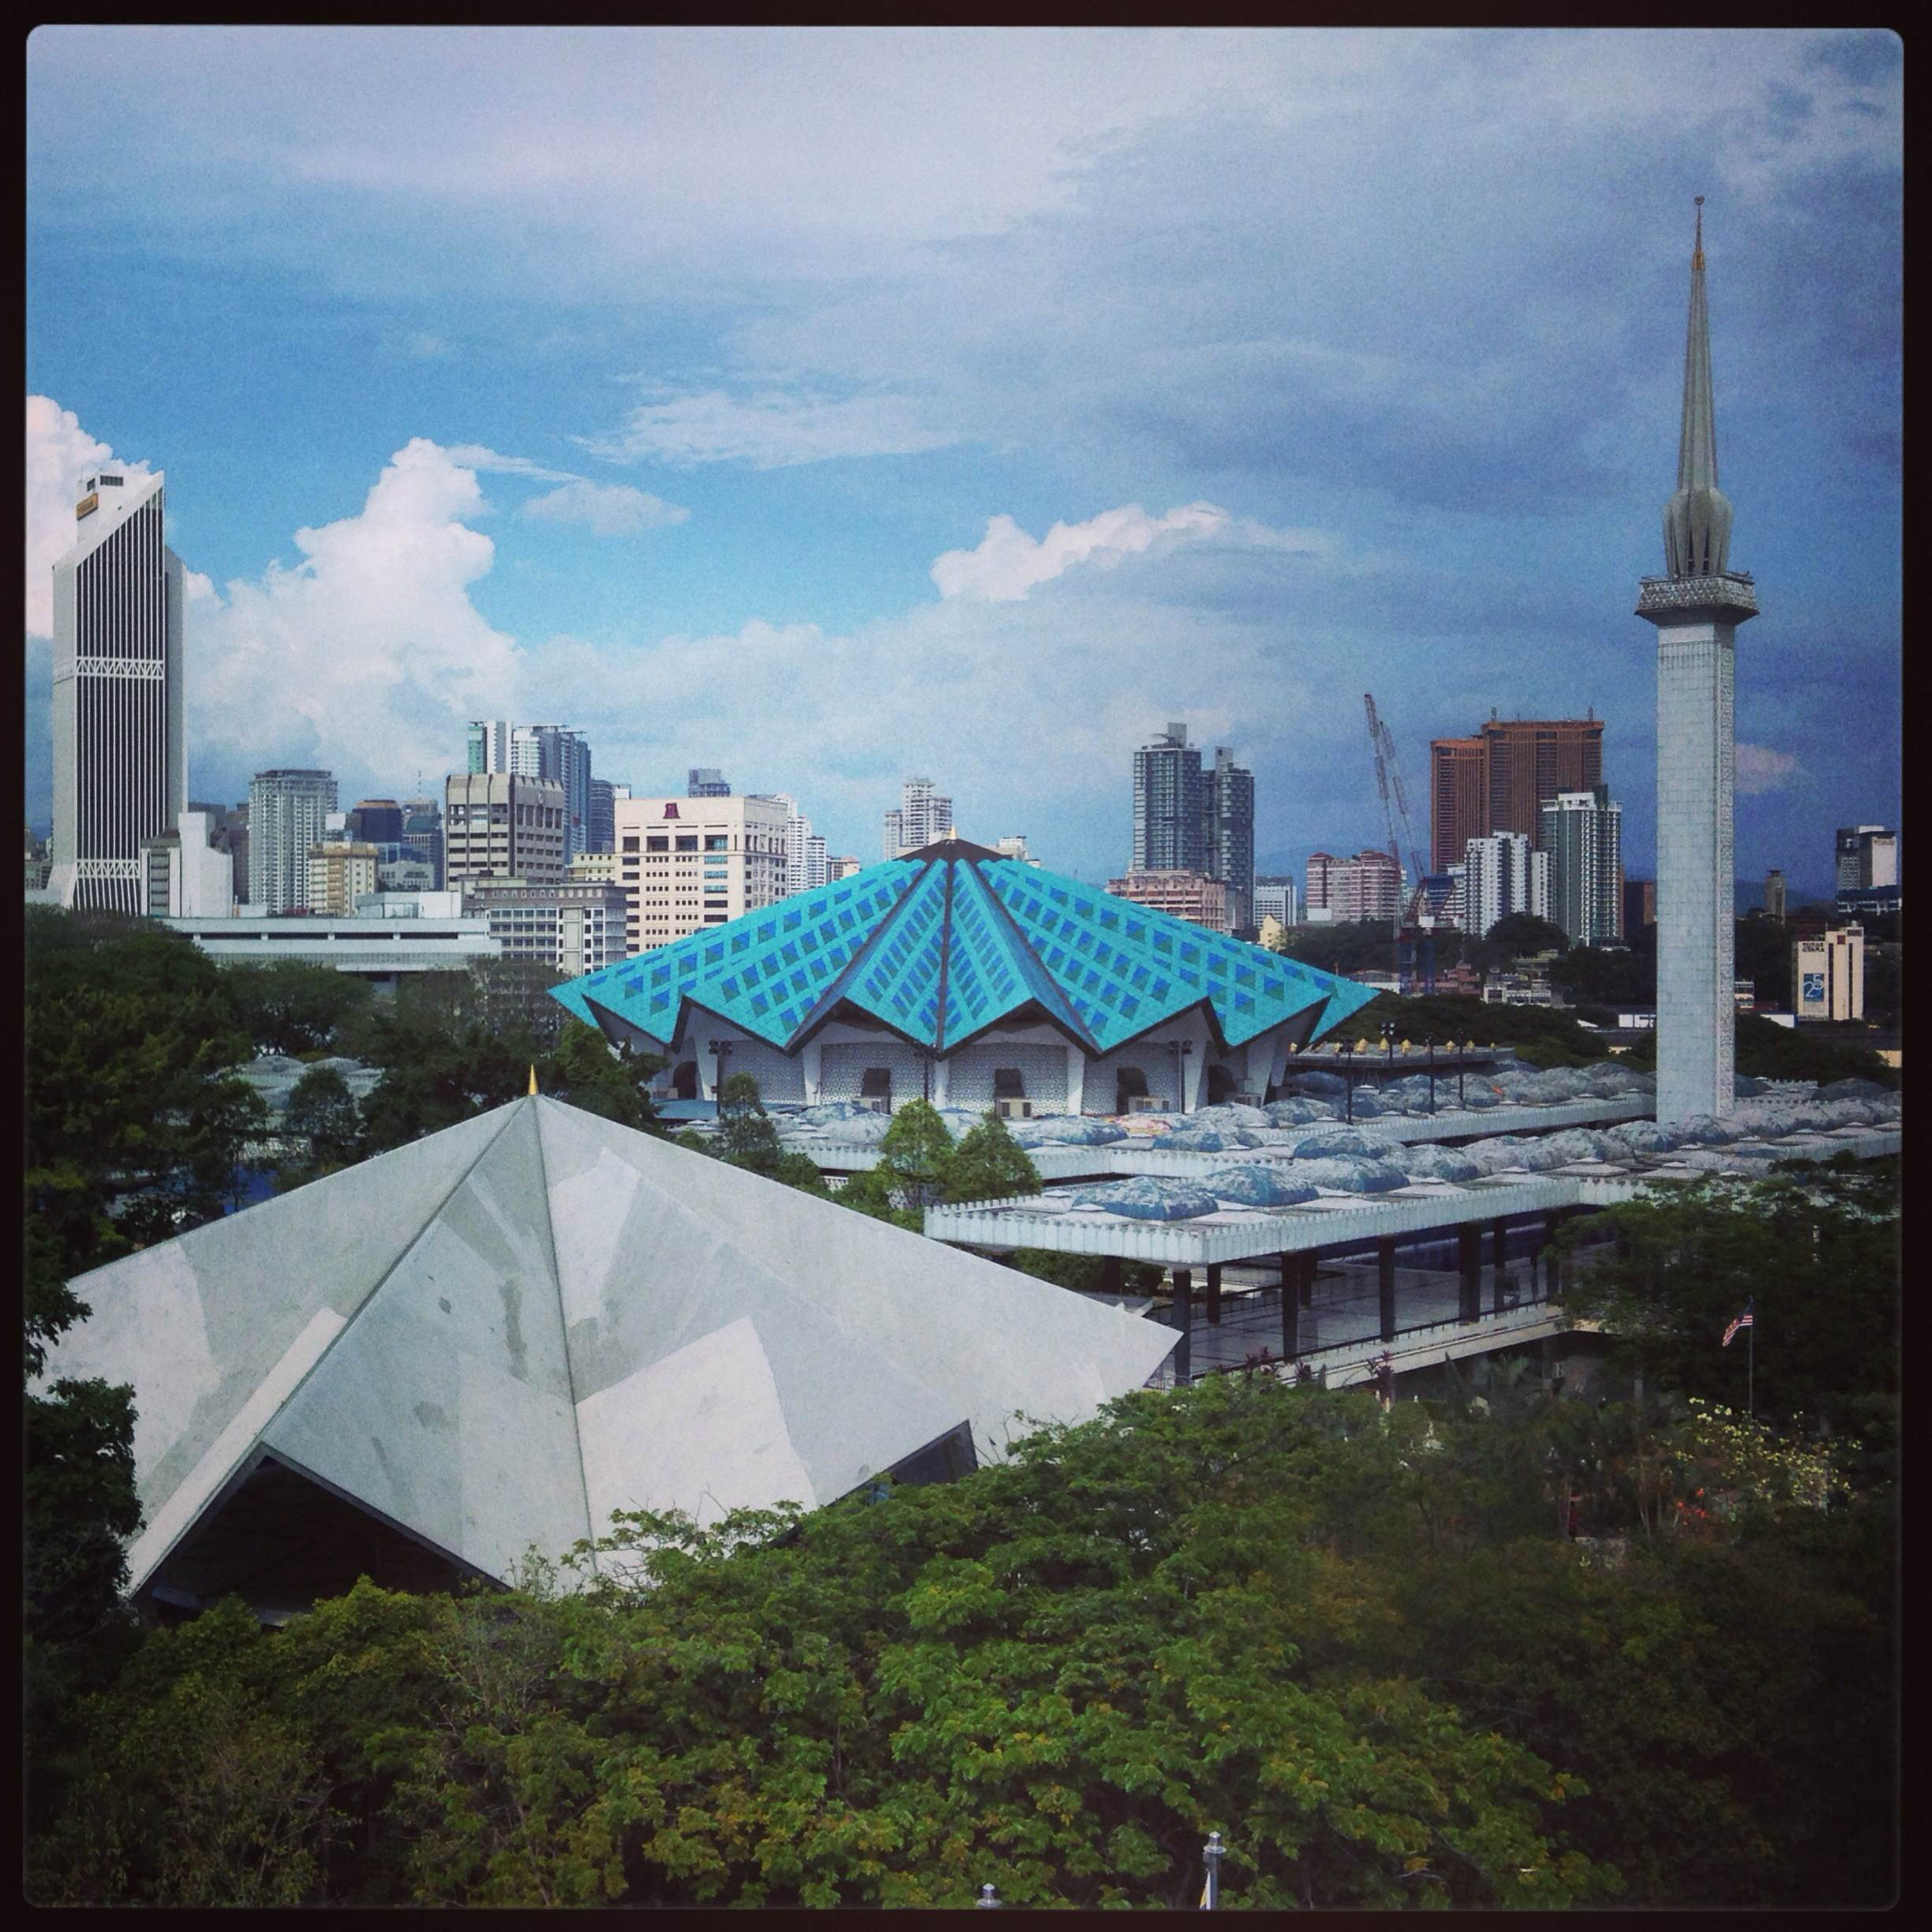 10 Things I Like About Living in Kuala Lumpur